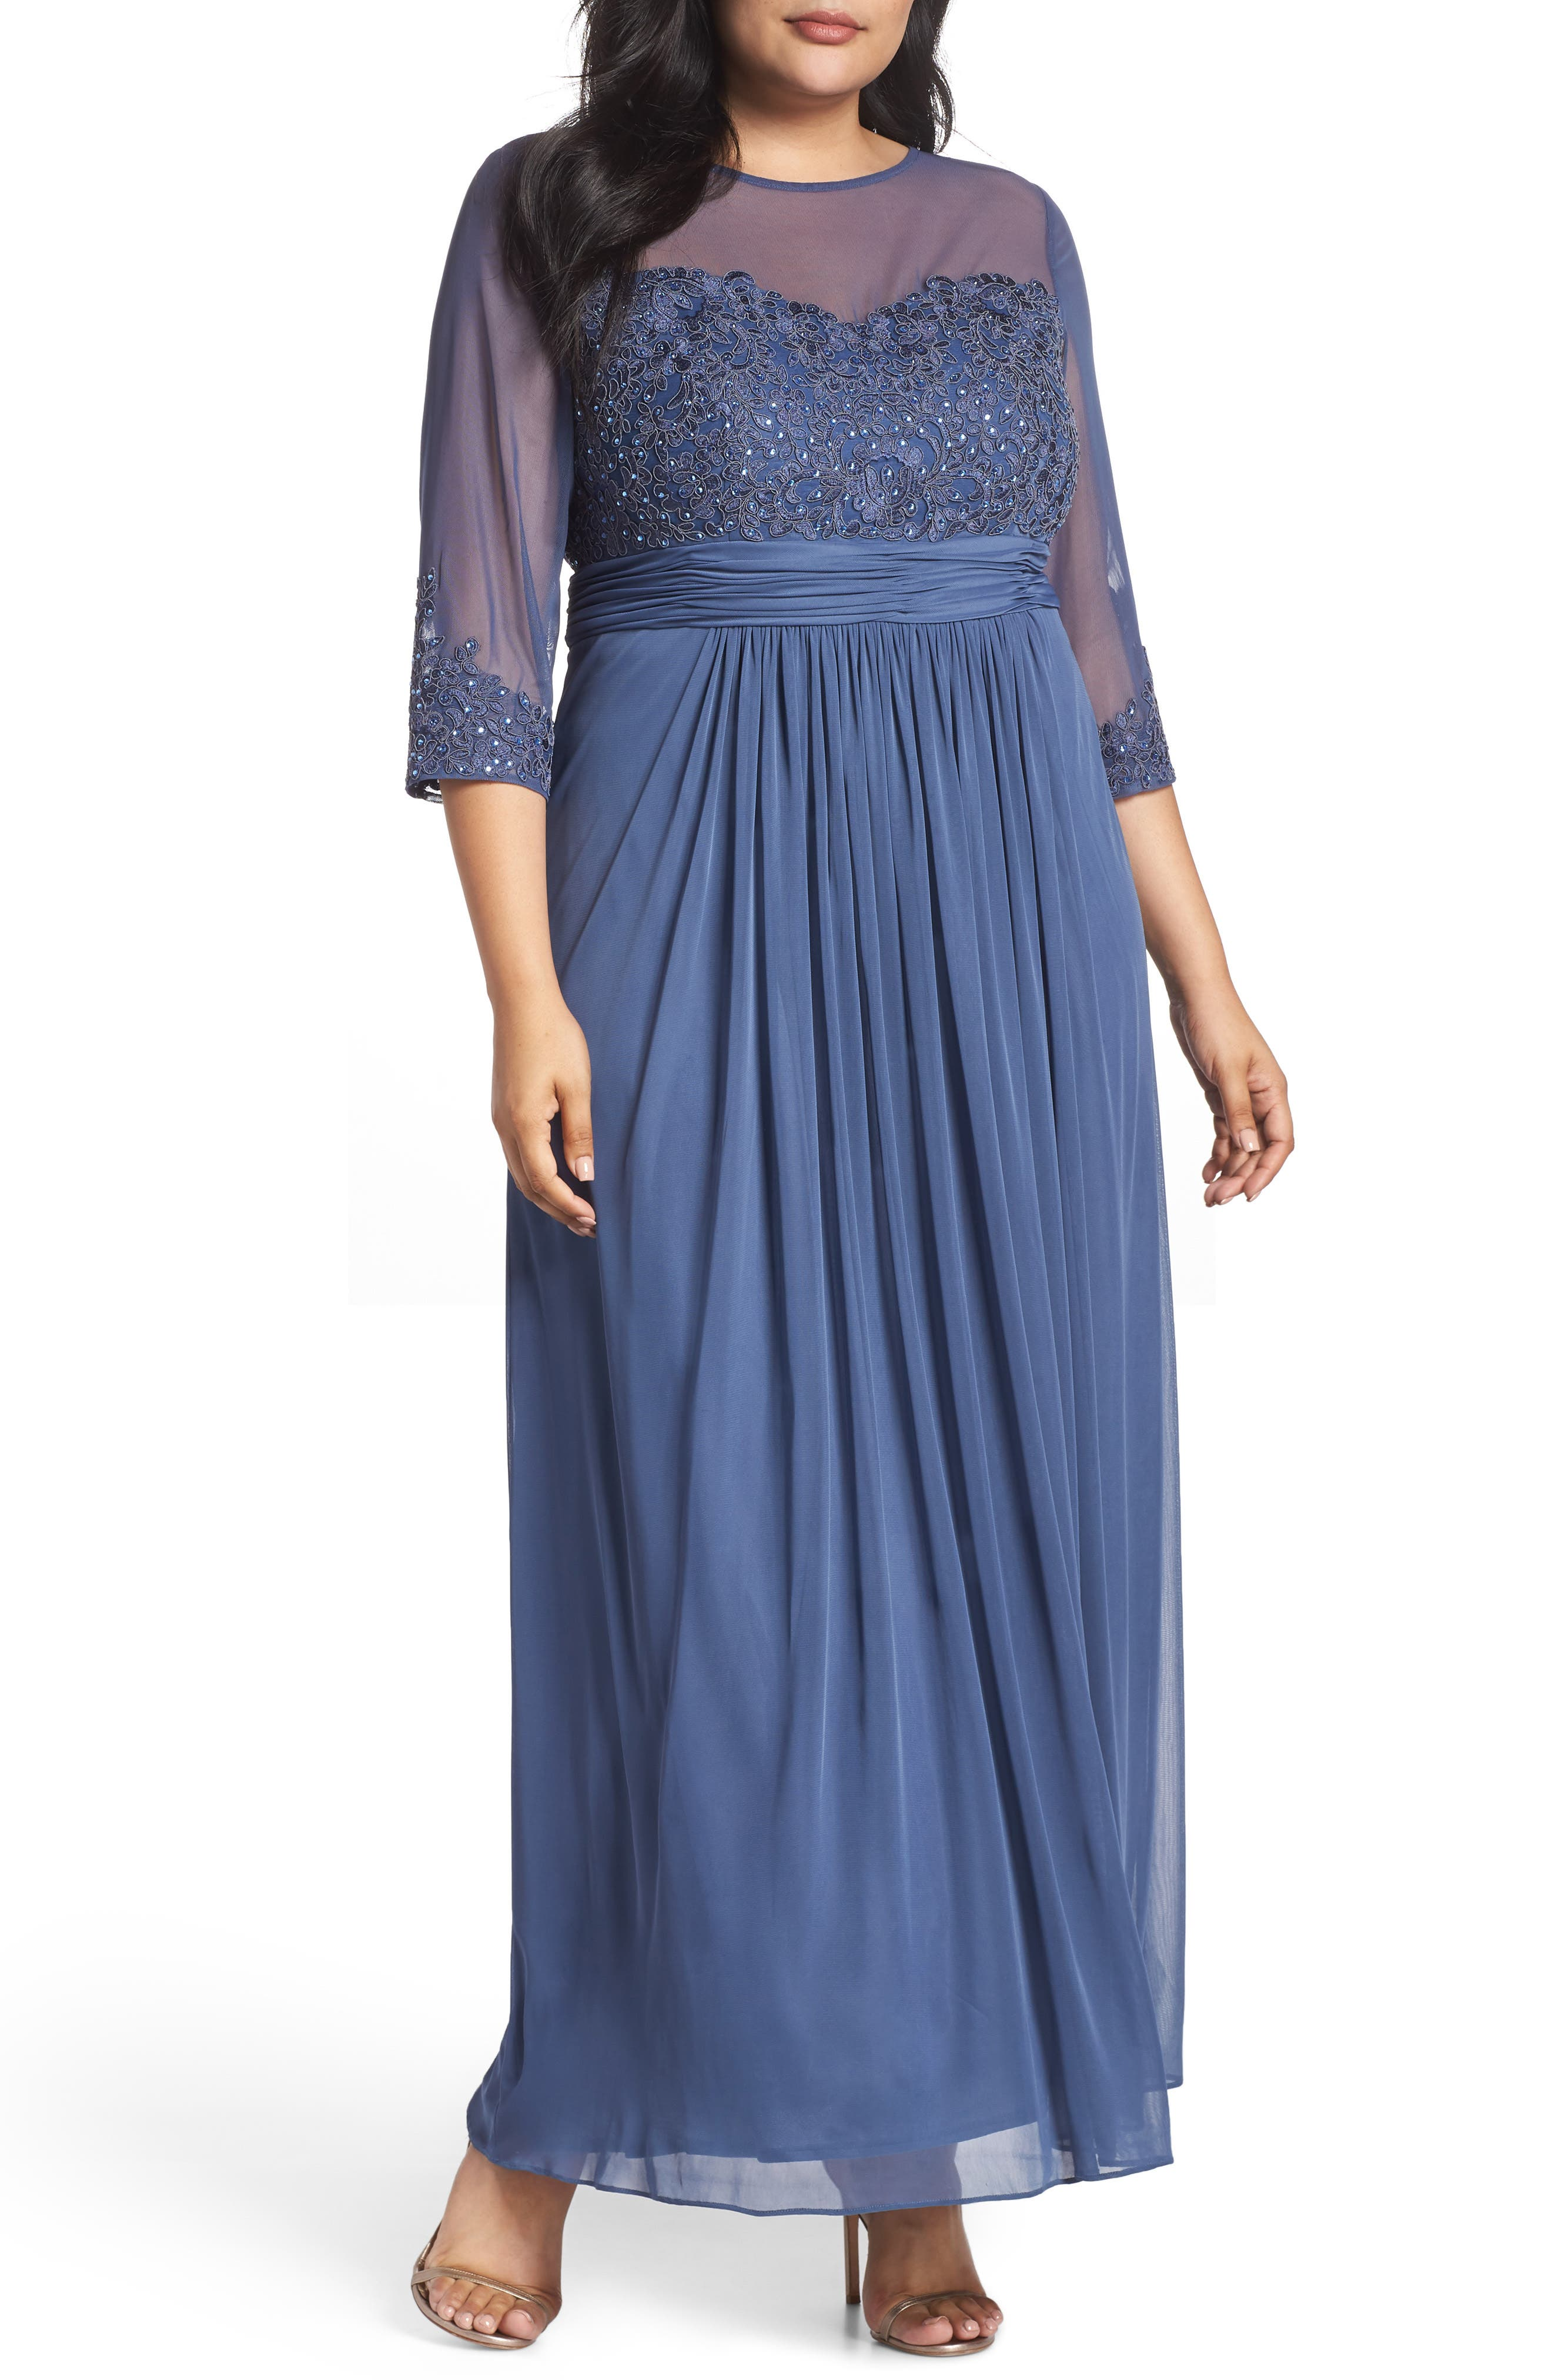 Edwardian Evening Gowns | Victorian Evening Dresses Plus Size Womens Alex Evenings Embellished Illusion Sweetheart A-Line Gown Size 18W - Purple $279.00 AT vintagedancer.com